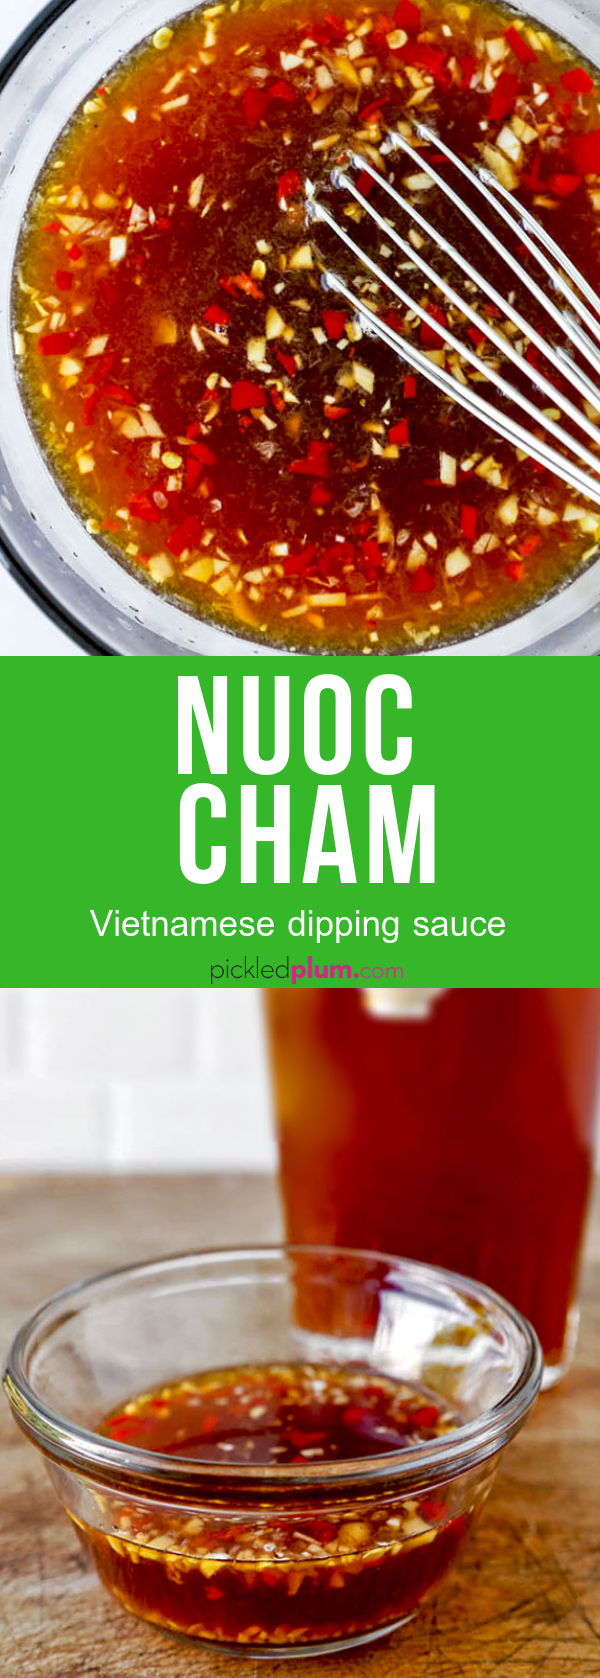 Nuoc Cham (Vietnamese Dipping Sauce) images